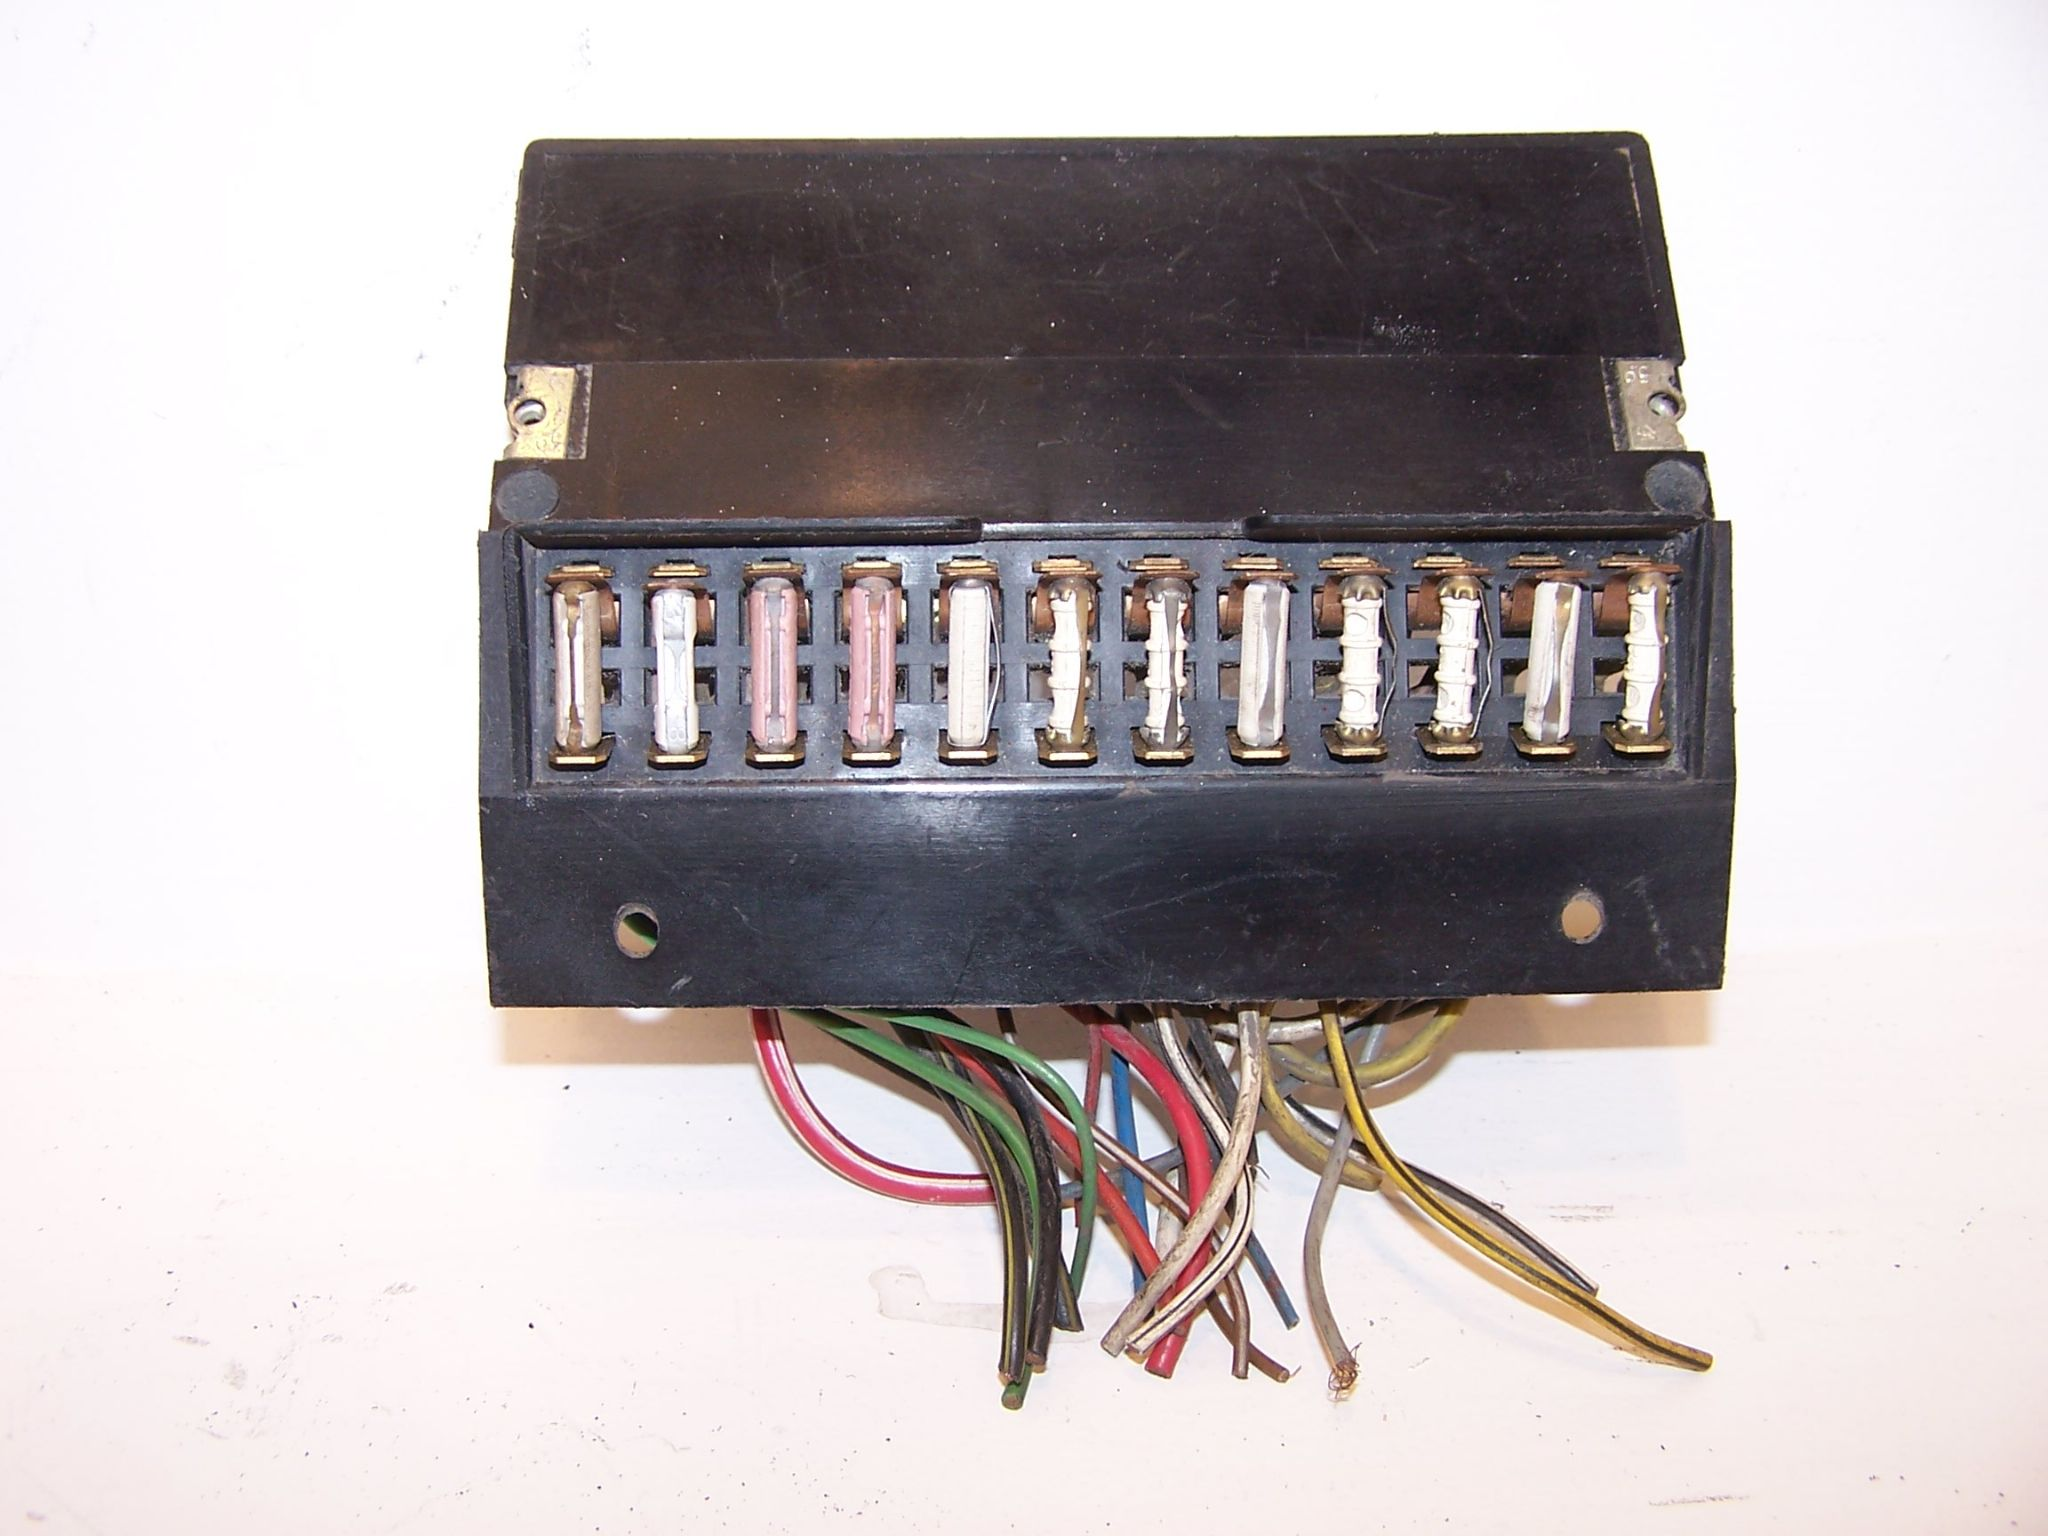 1969 volkswagen beetle fuse box 1974 vw beetle fuse box | wiring library #14